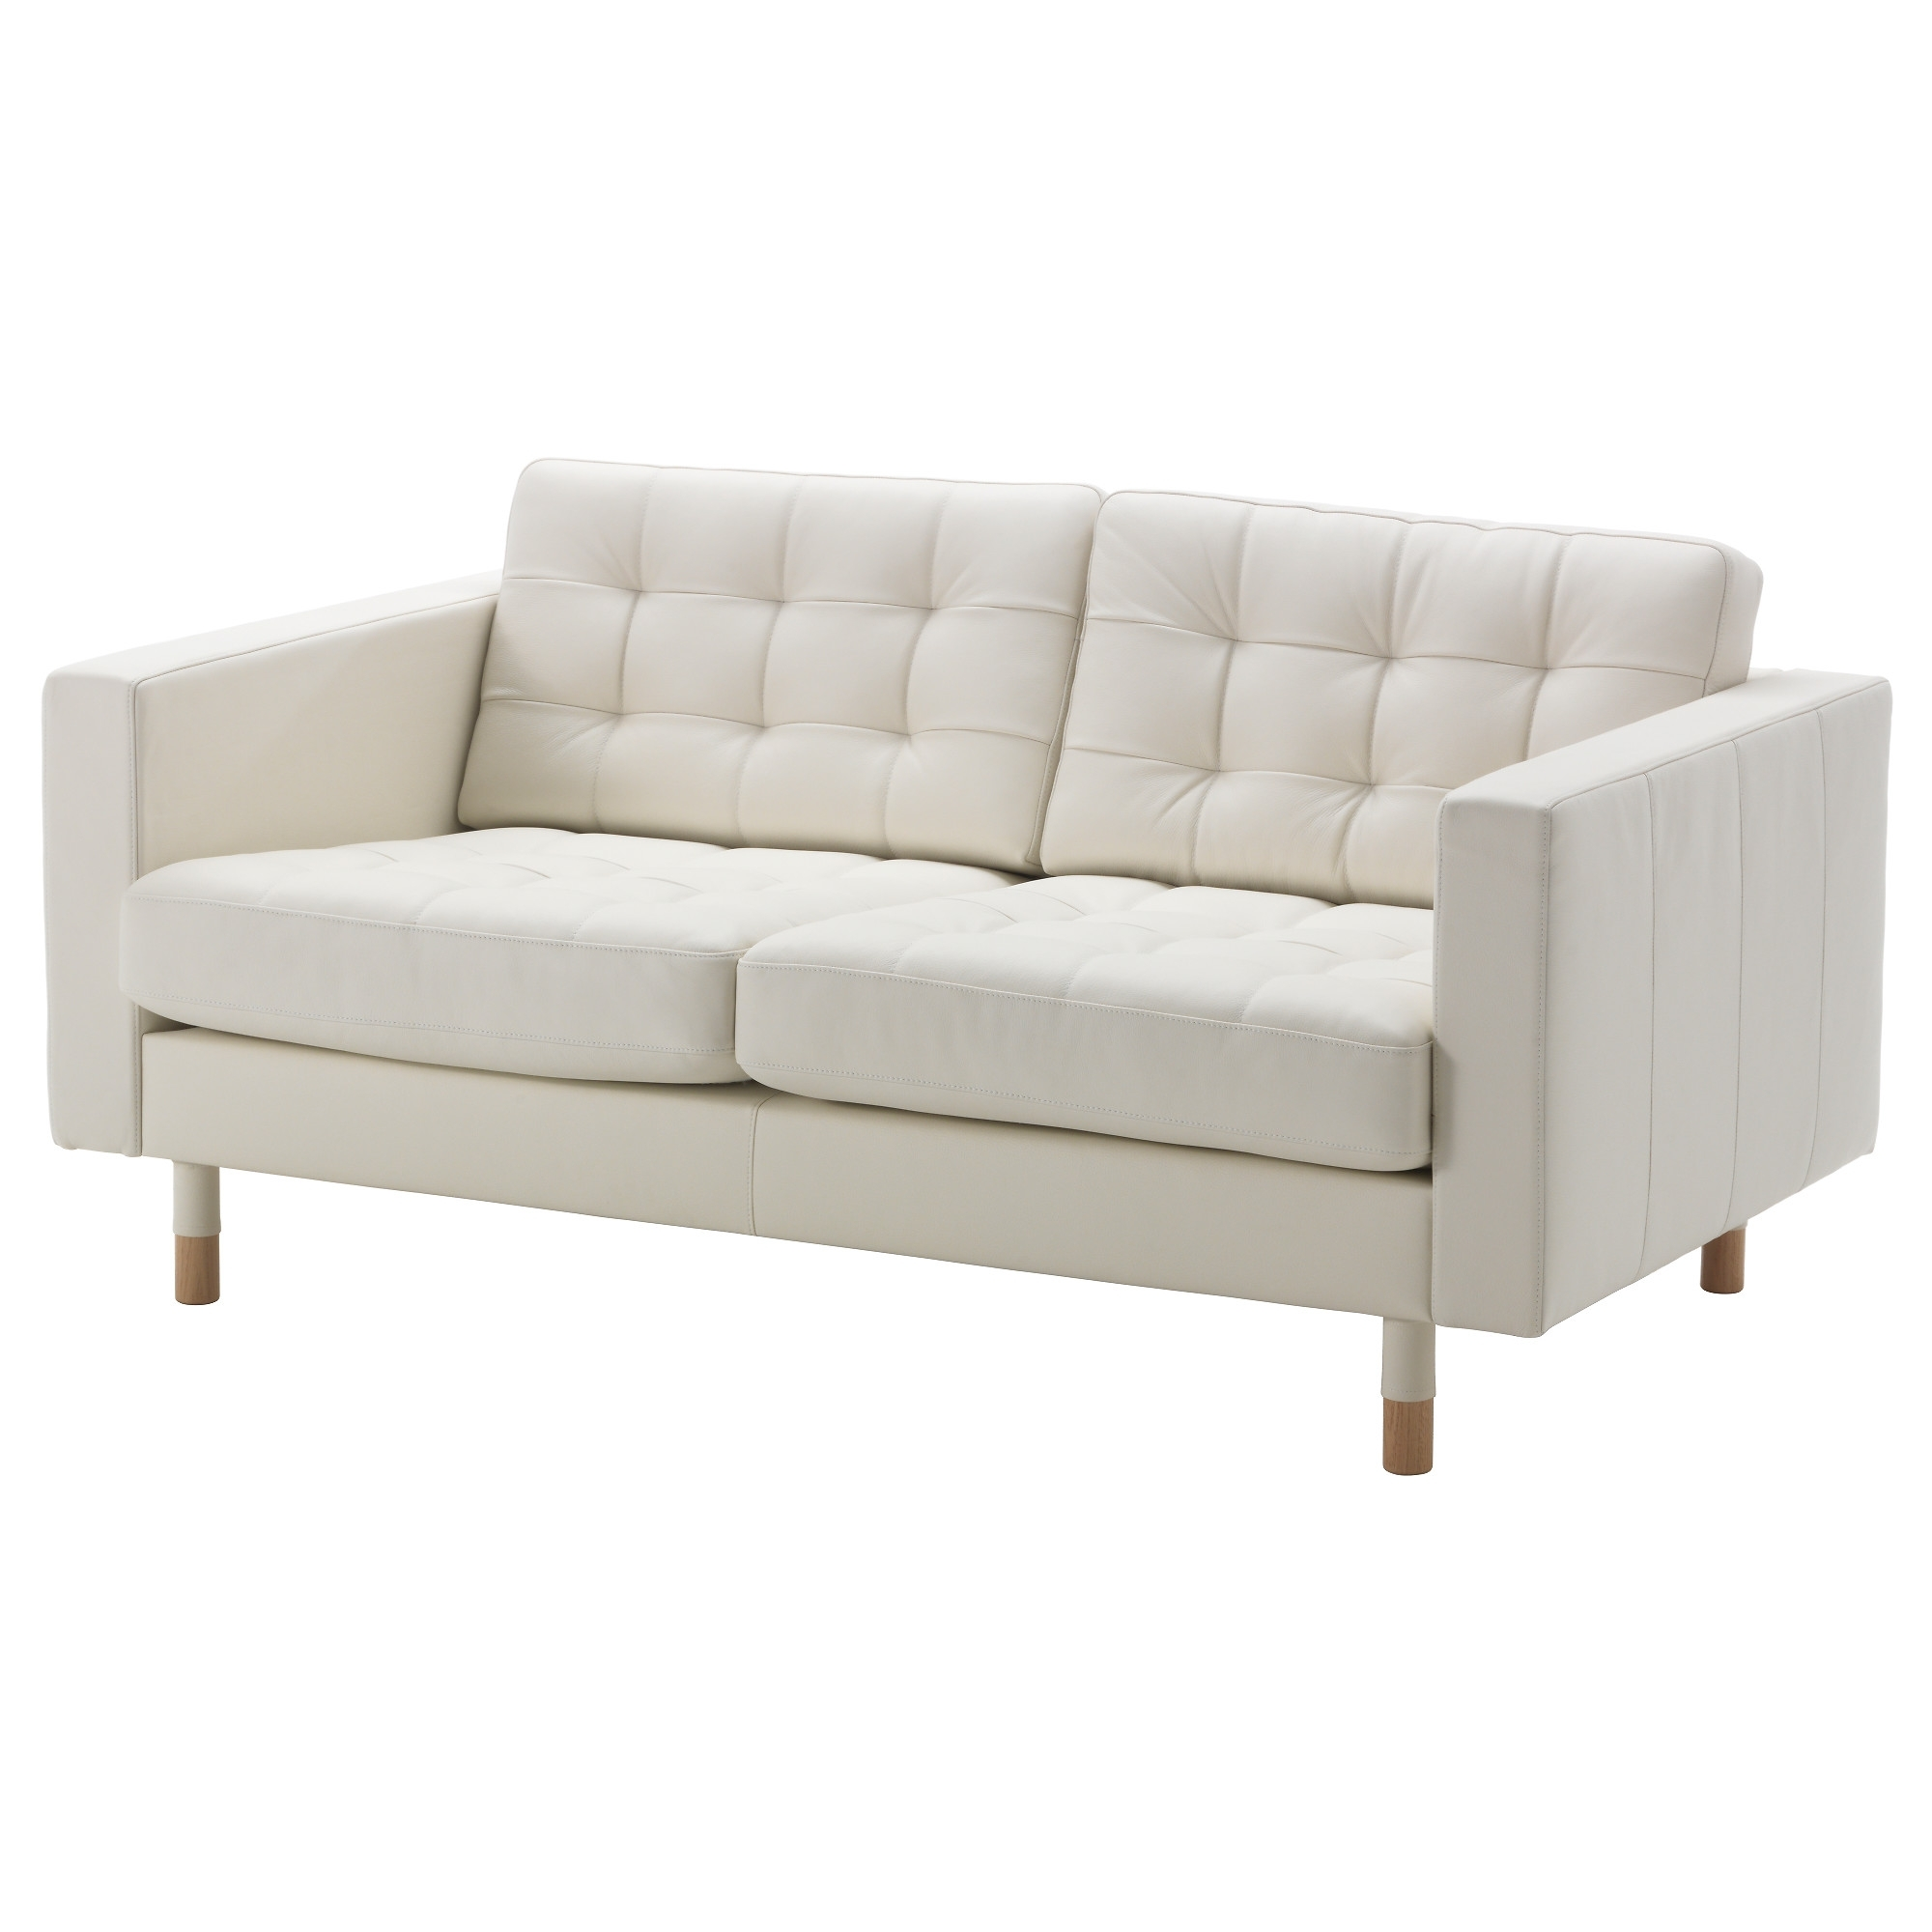 Landskrona Loveseat - Grann/bomstad White, Wood - Ikea inside Ikea Small Sofas (Image 5 of 10)